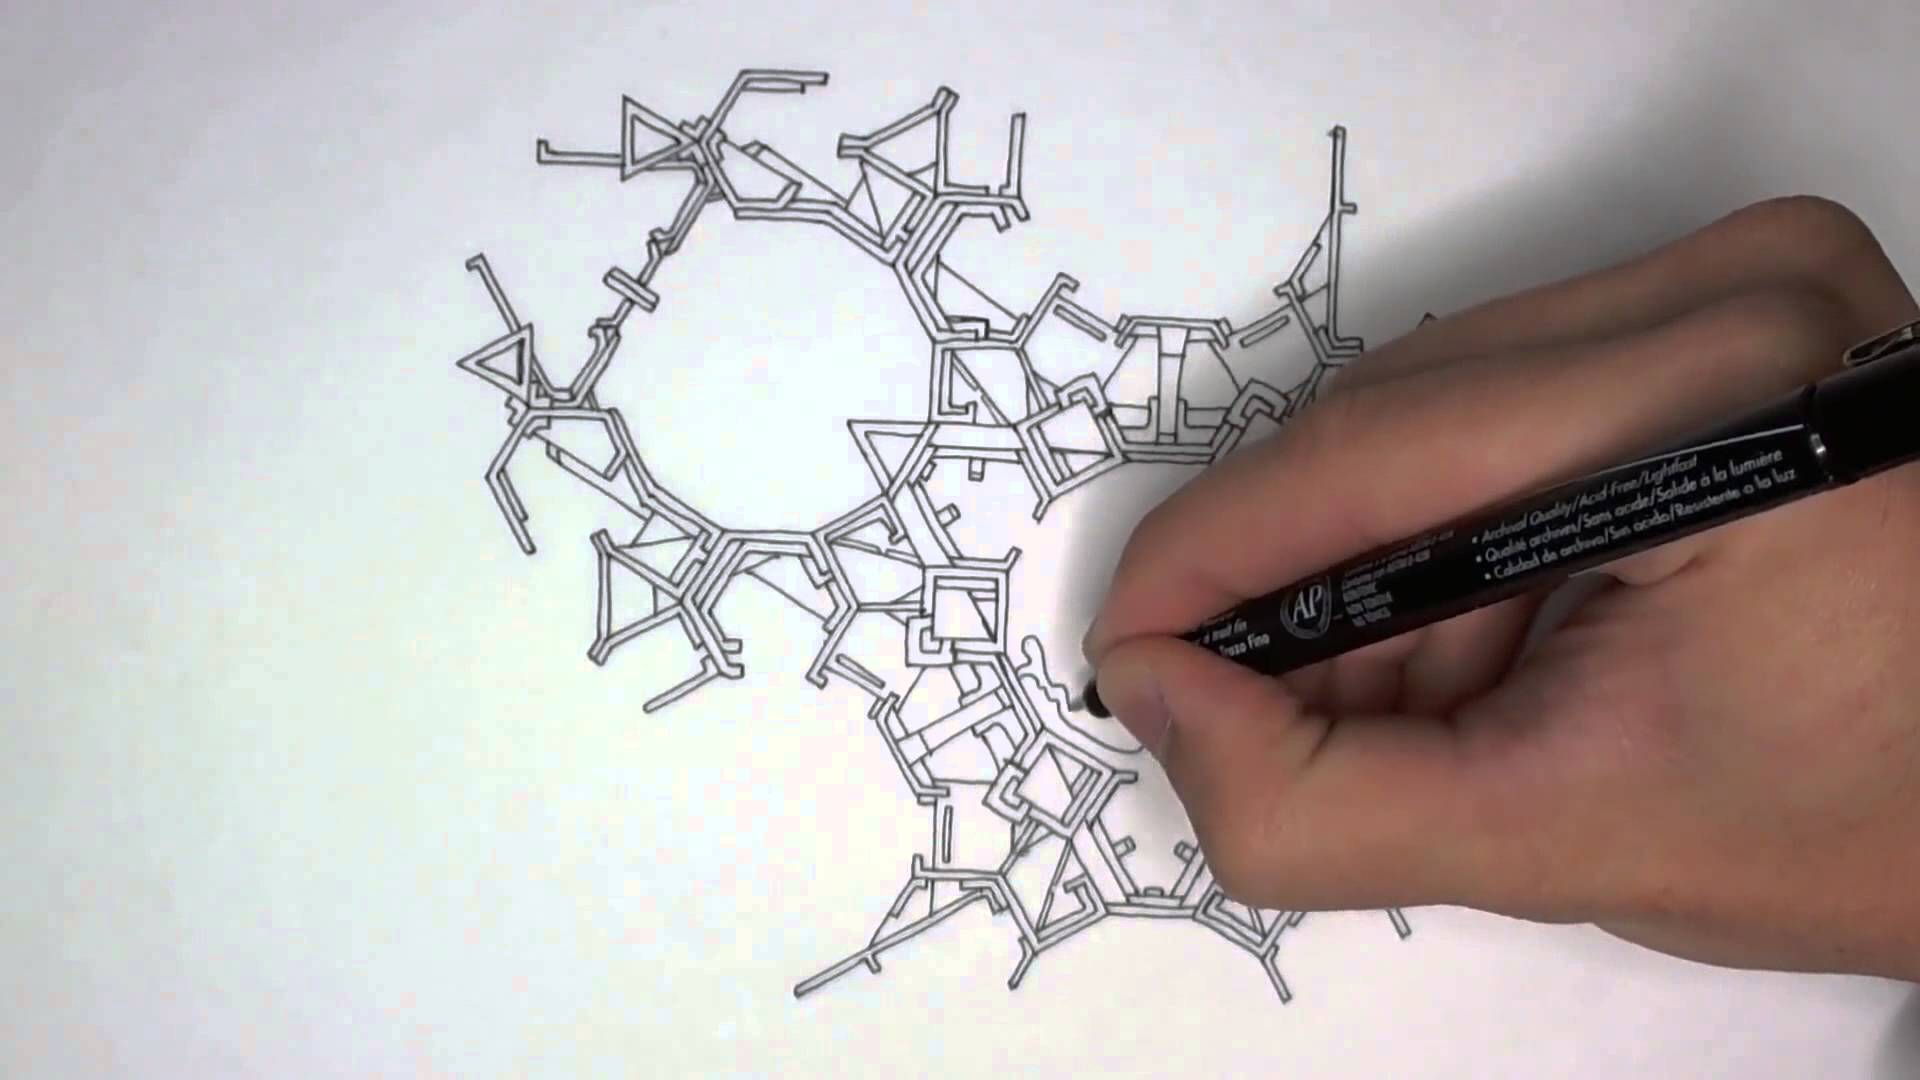 Drawn paper doodle Drawing Tessellated with Paper YouTube